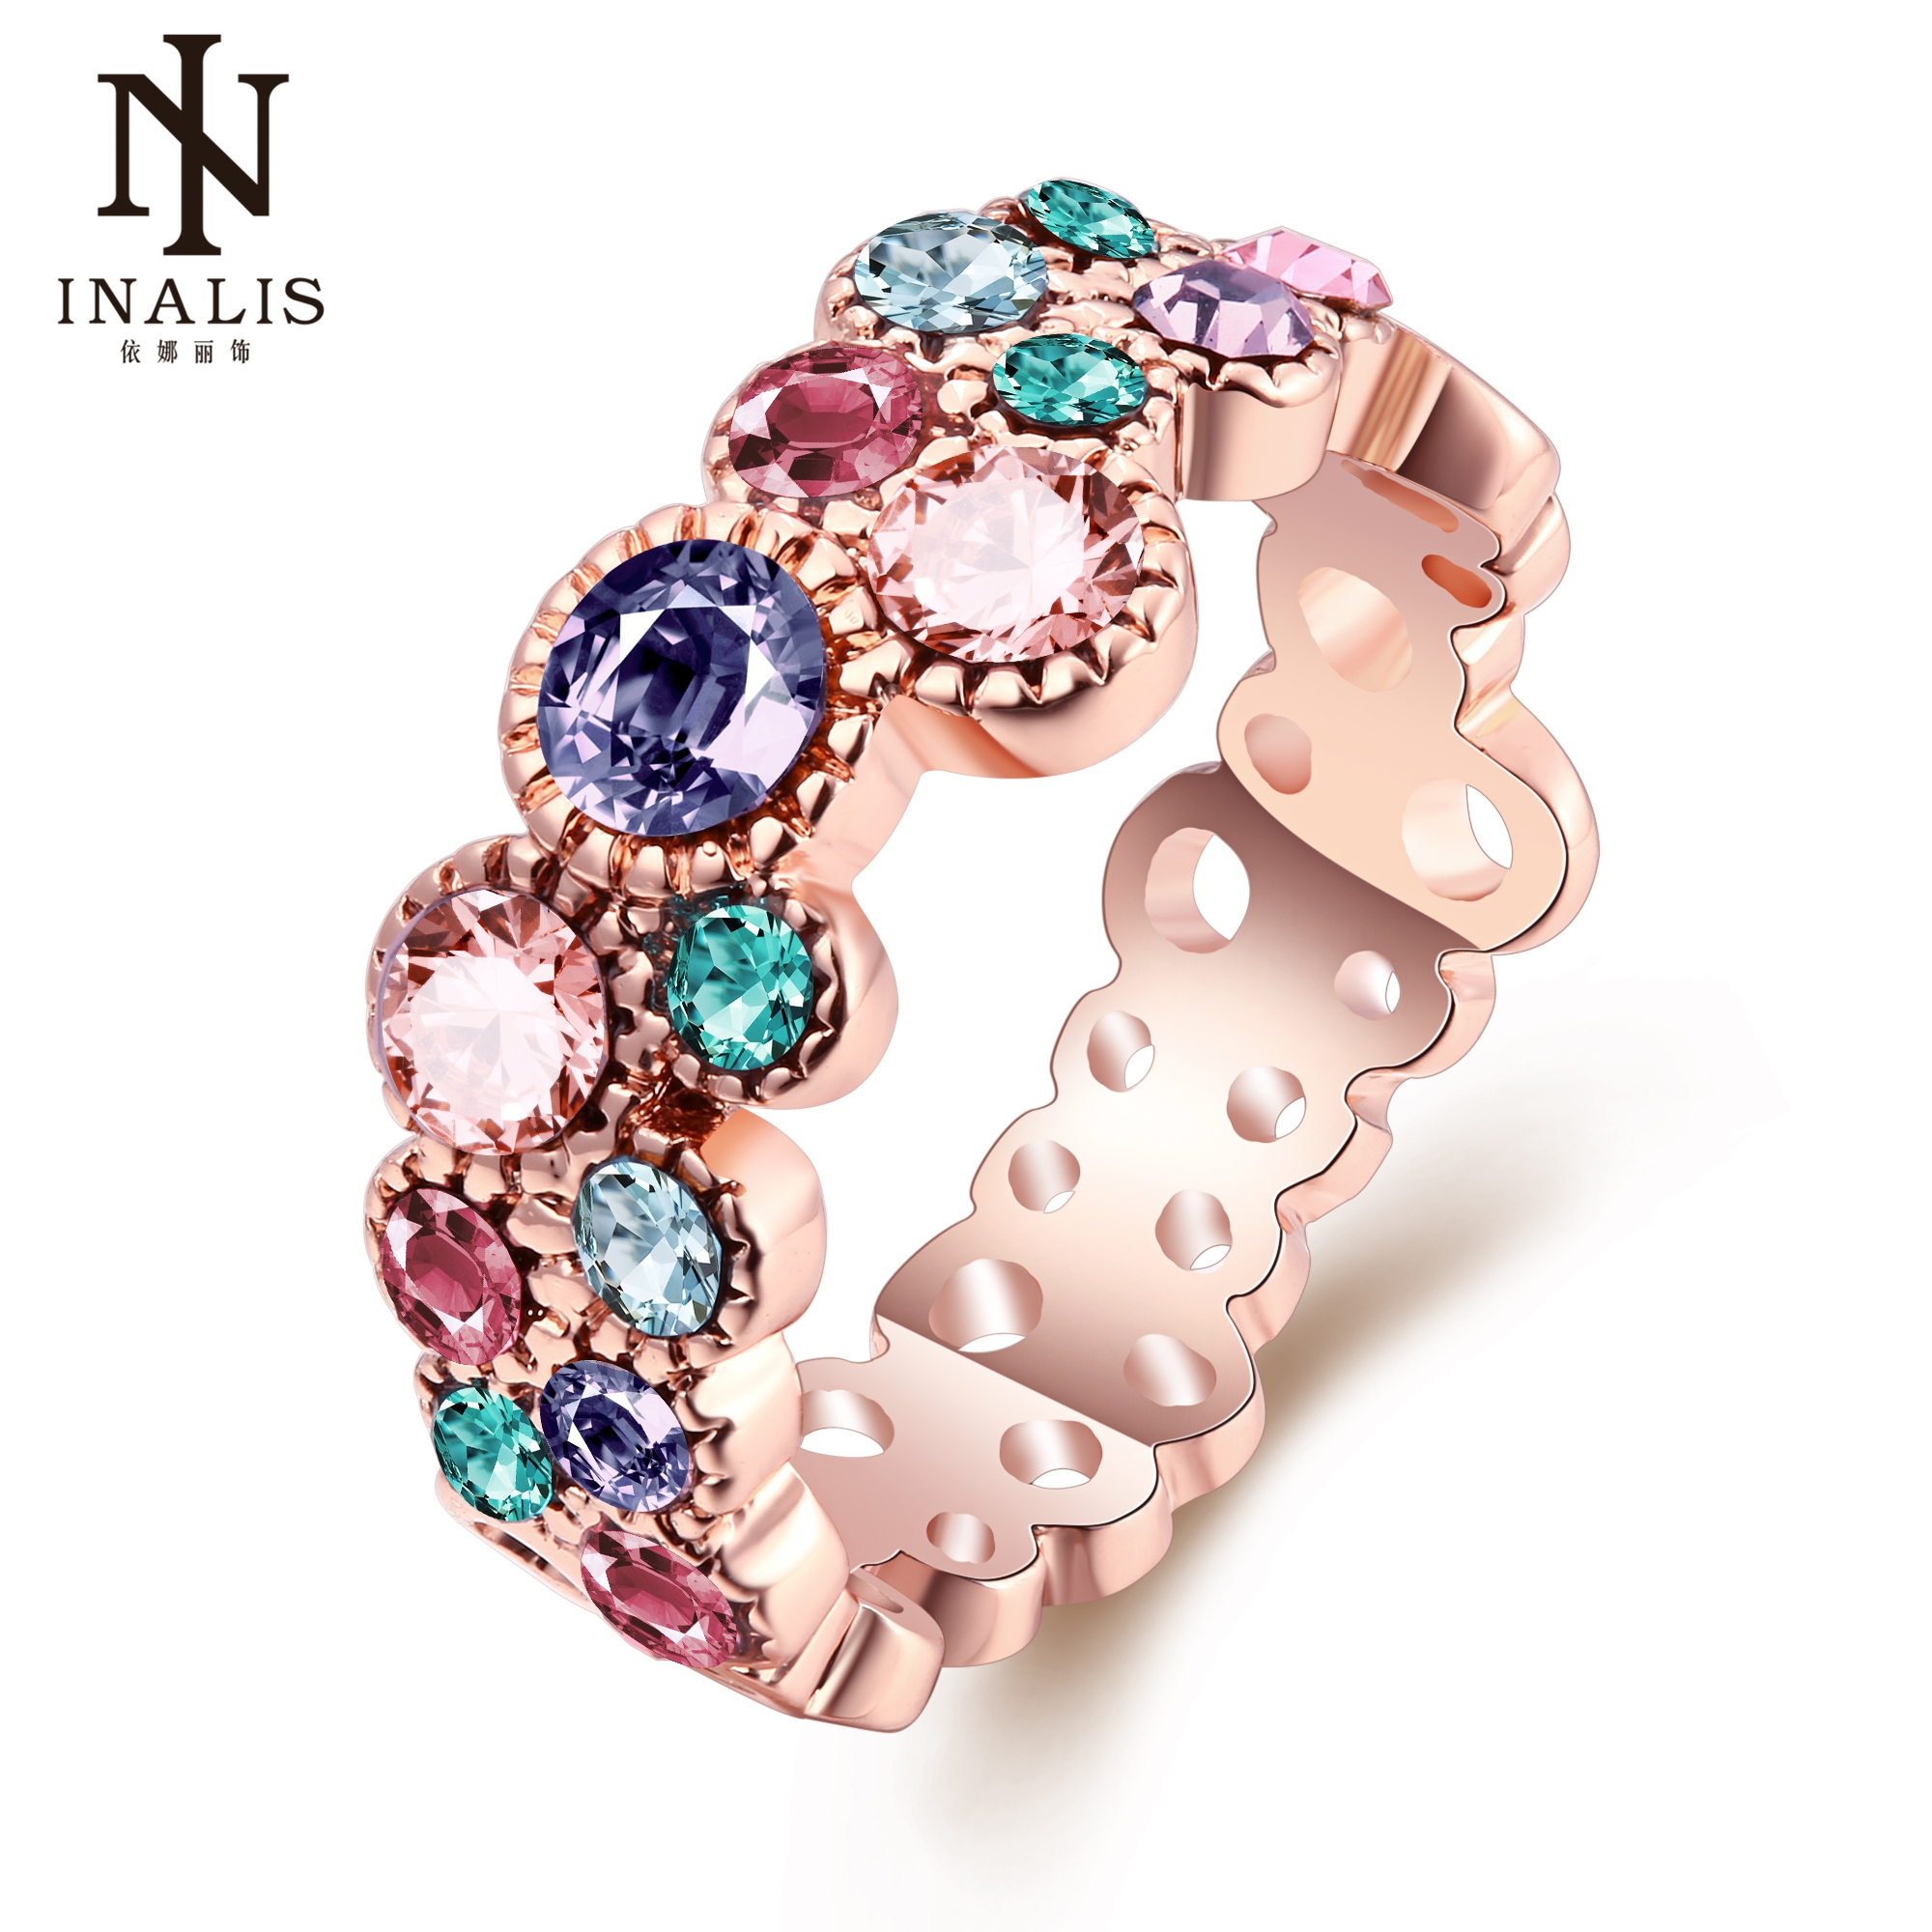 INALIS Unique Design Rose Gold Color Ring for Female Wedding with AAA Colorful Cubic Zircon Bijouterie